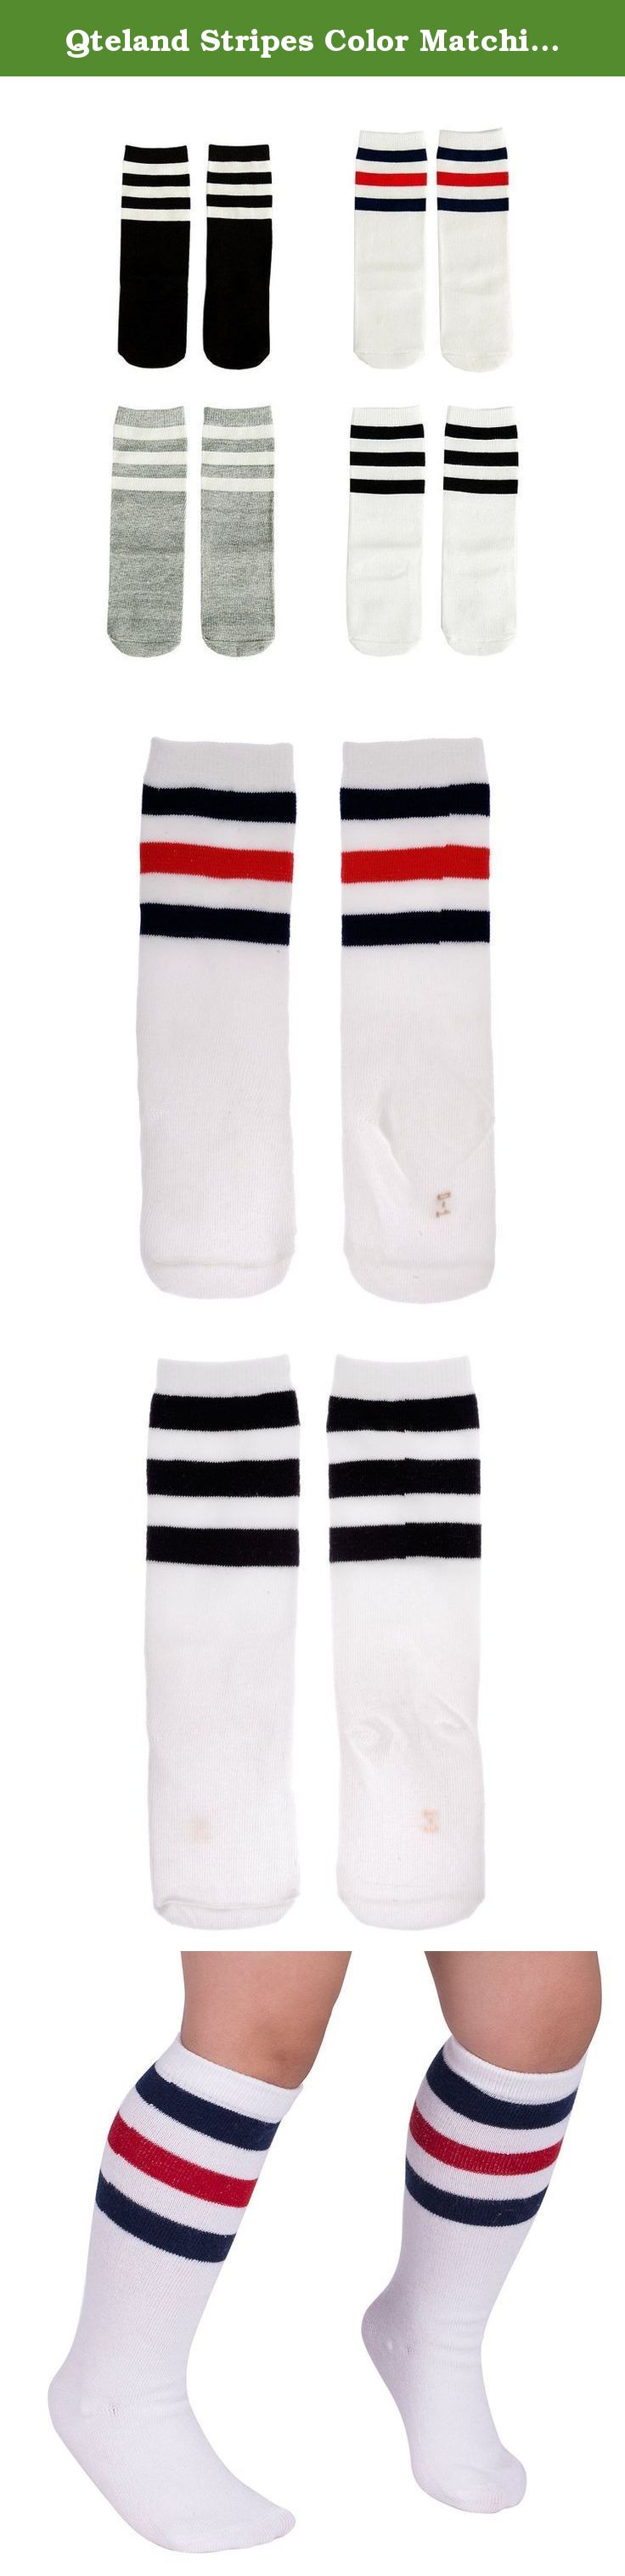 Qteland Stripes Color Matching Unisex-baby Knee High Socks Tube socks for Kids 4-pack (M(1-3 years), #1). Qteland Cotton high knee socks for Babies are an adorable and fashion item dress up your little one. Look for all of our adorable high knee socks! Available in stripes, Geometry,fox,cat,Mickey Mouse,bear, rabbit and so on. A material composition for comfort these socks are made of 75% cotton, 20% polyester, and 5% spandex for a snug, comfortable fit. Three size for your choose Size S:...